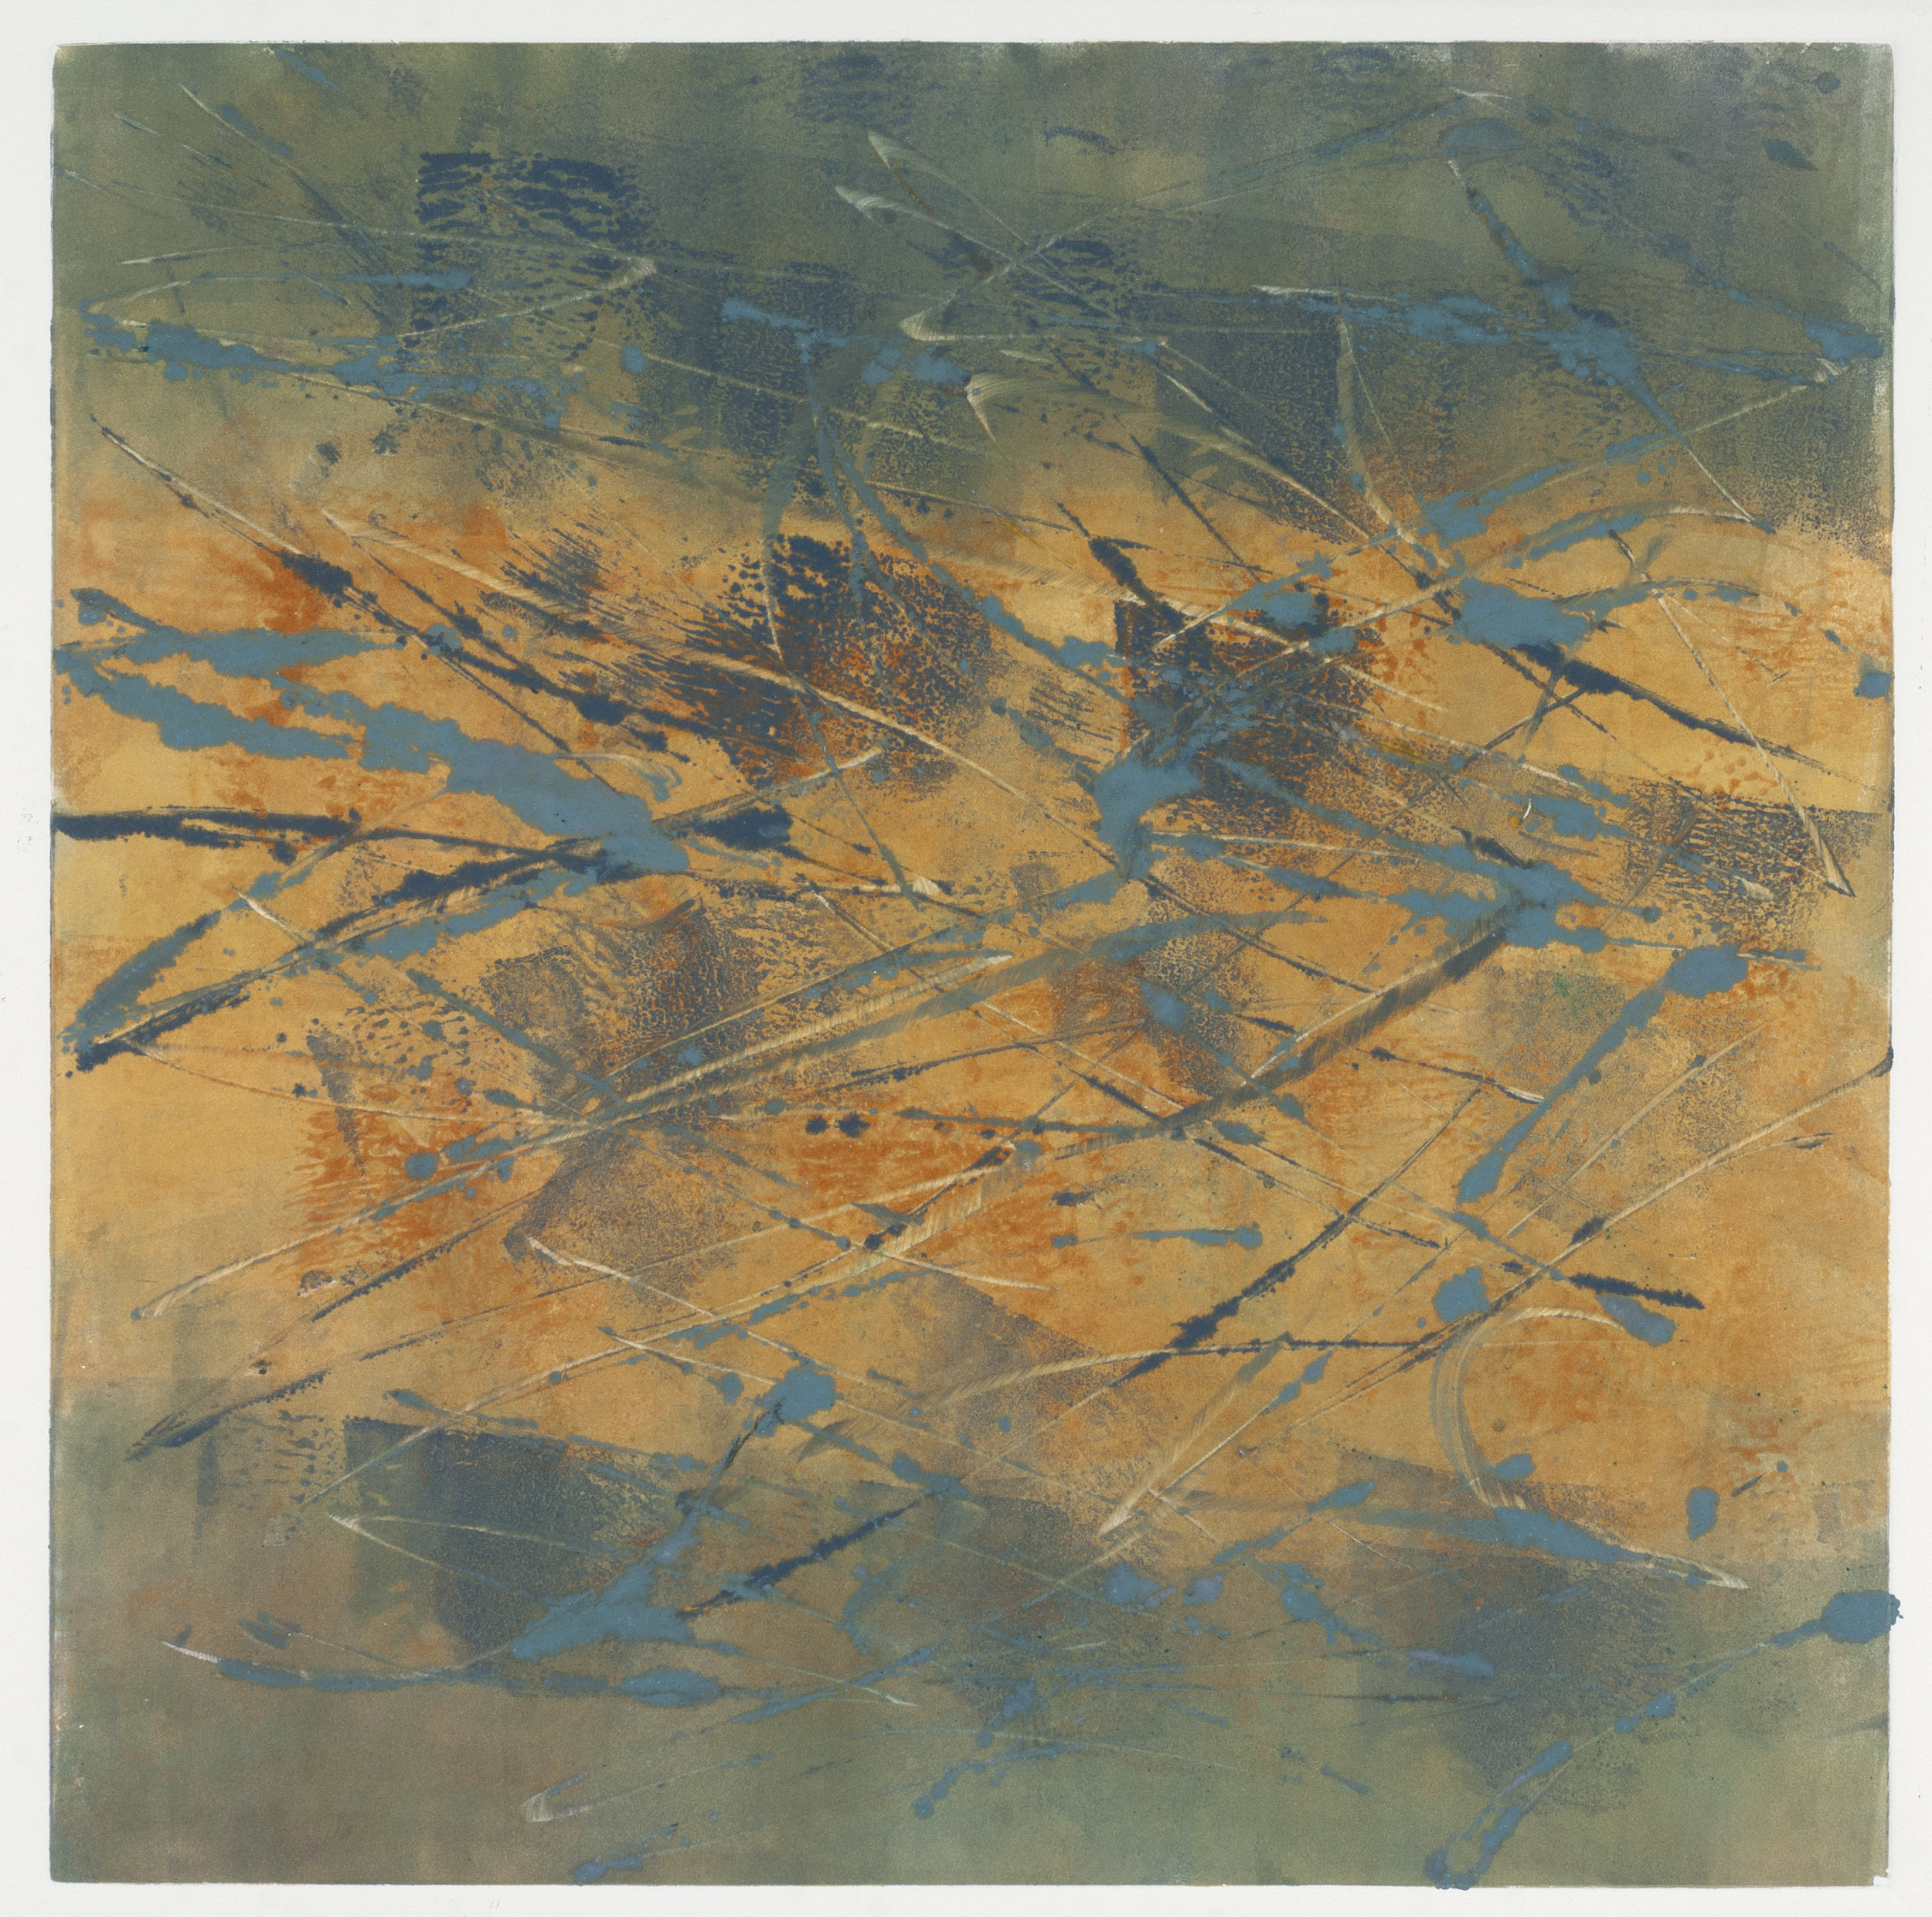 Autumn, 2018, monotype, 14 x 14 in, $450